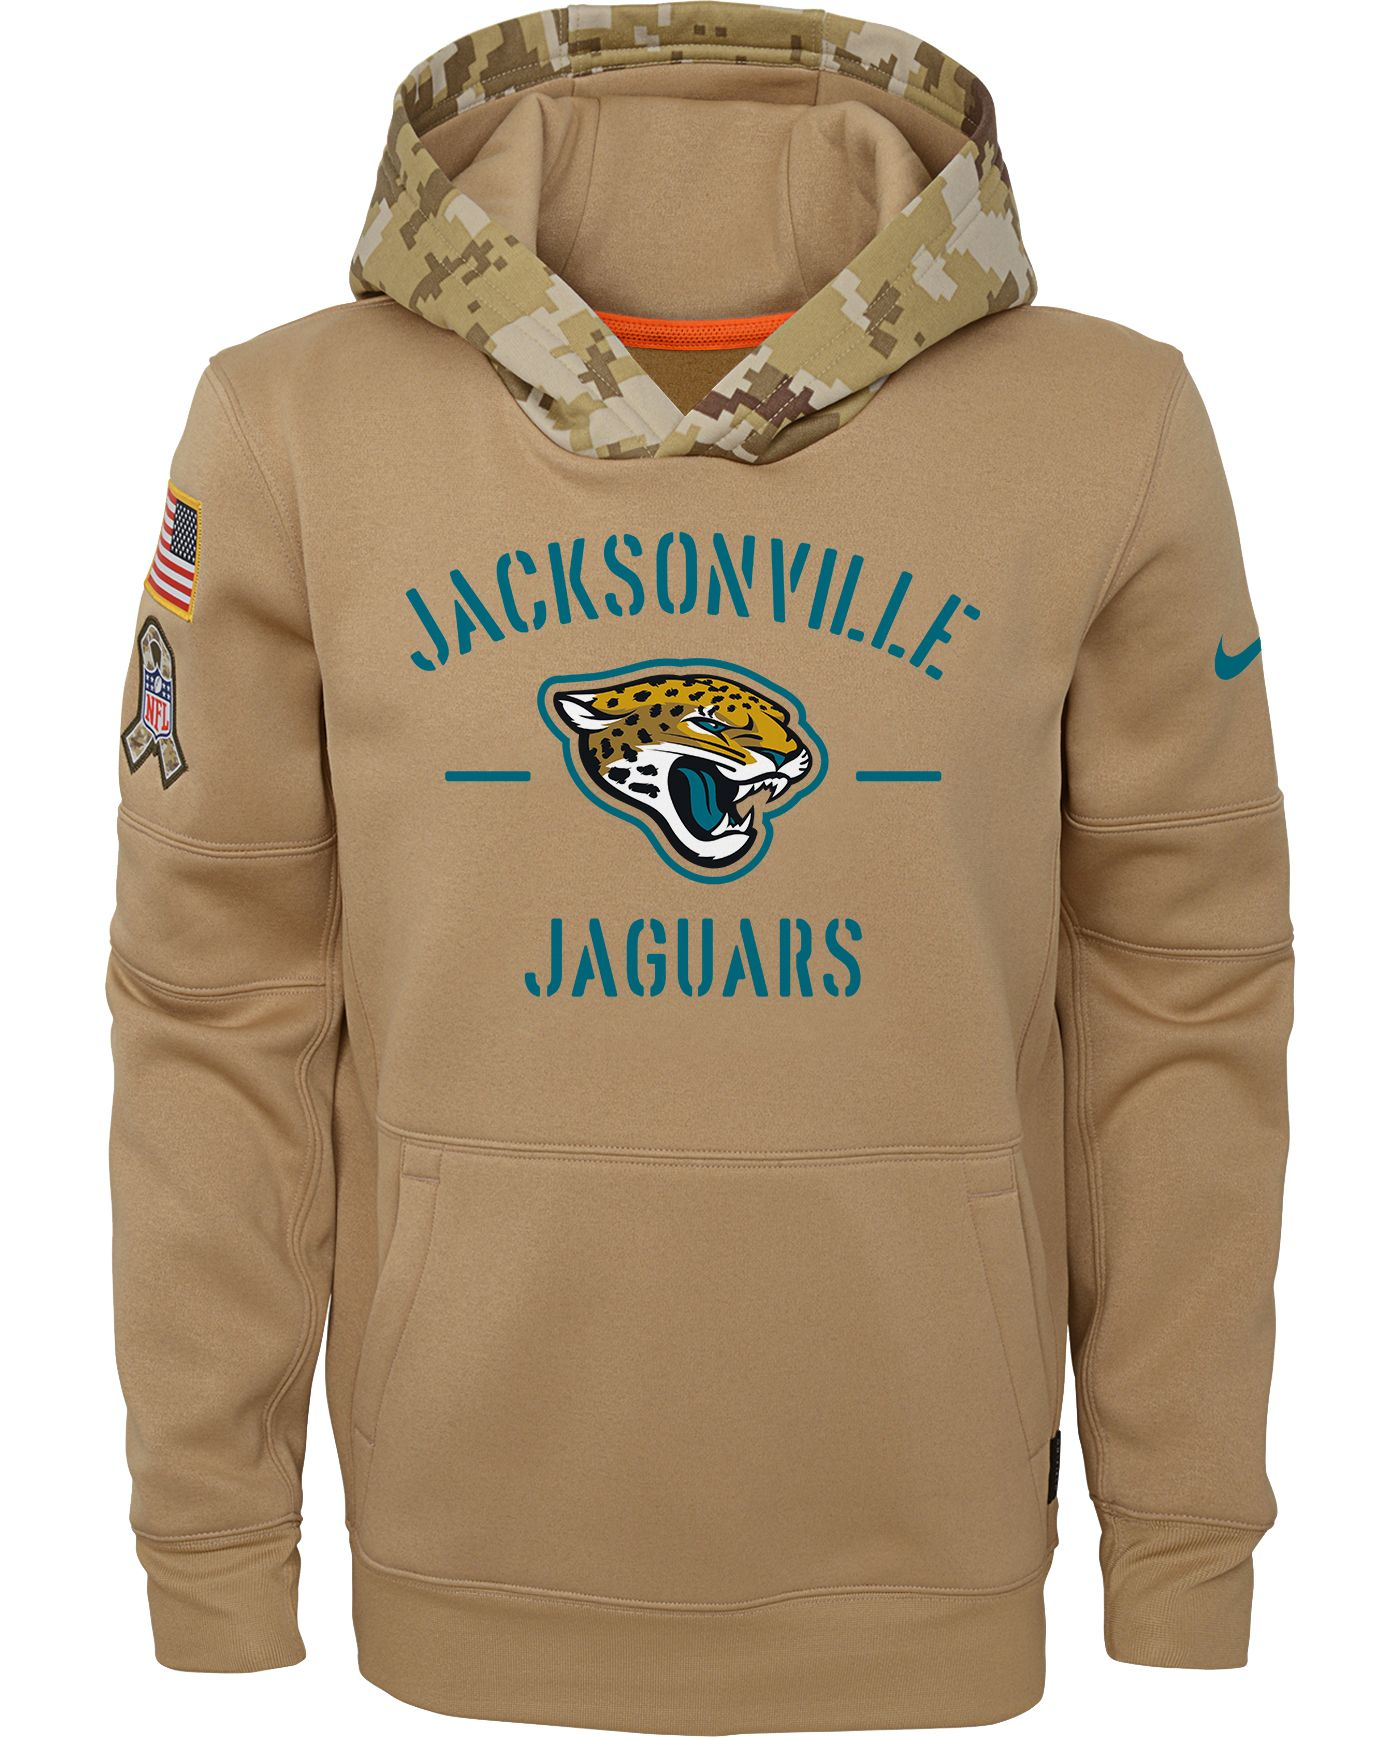 Nike Youth Salute to Service Jacksonville Jaguars Therma-FIT Beige Camo Hoodie